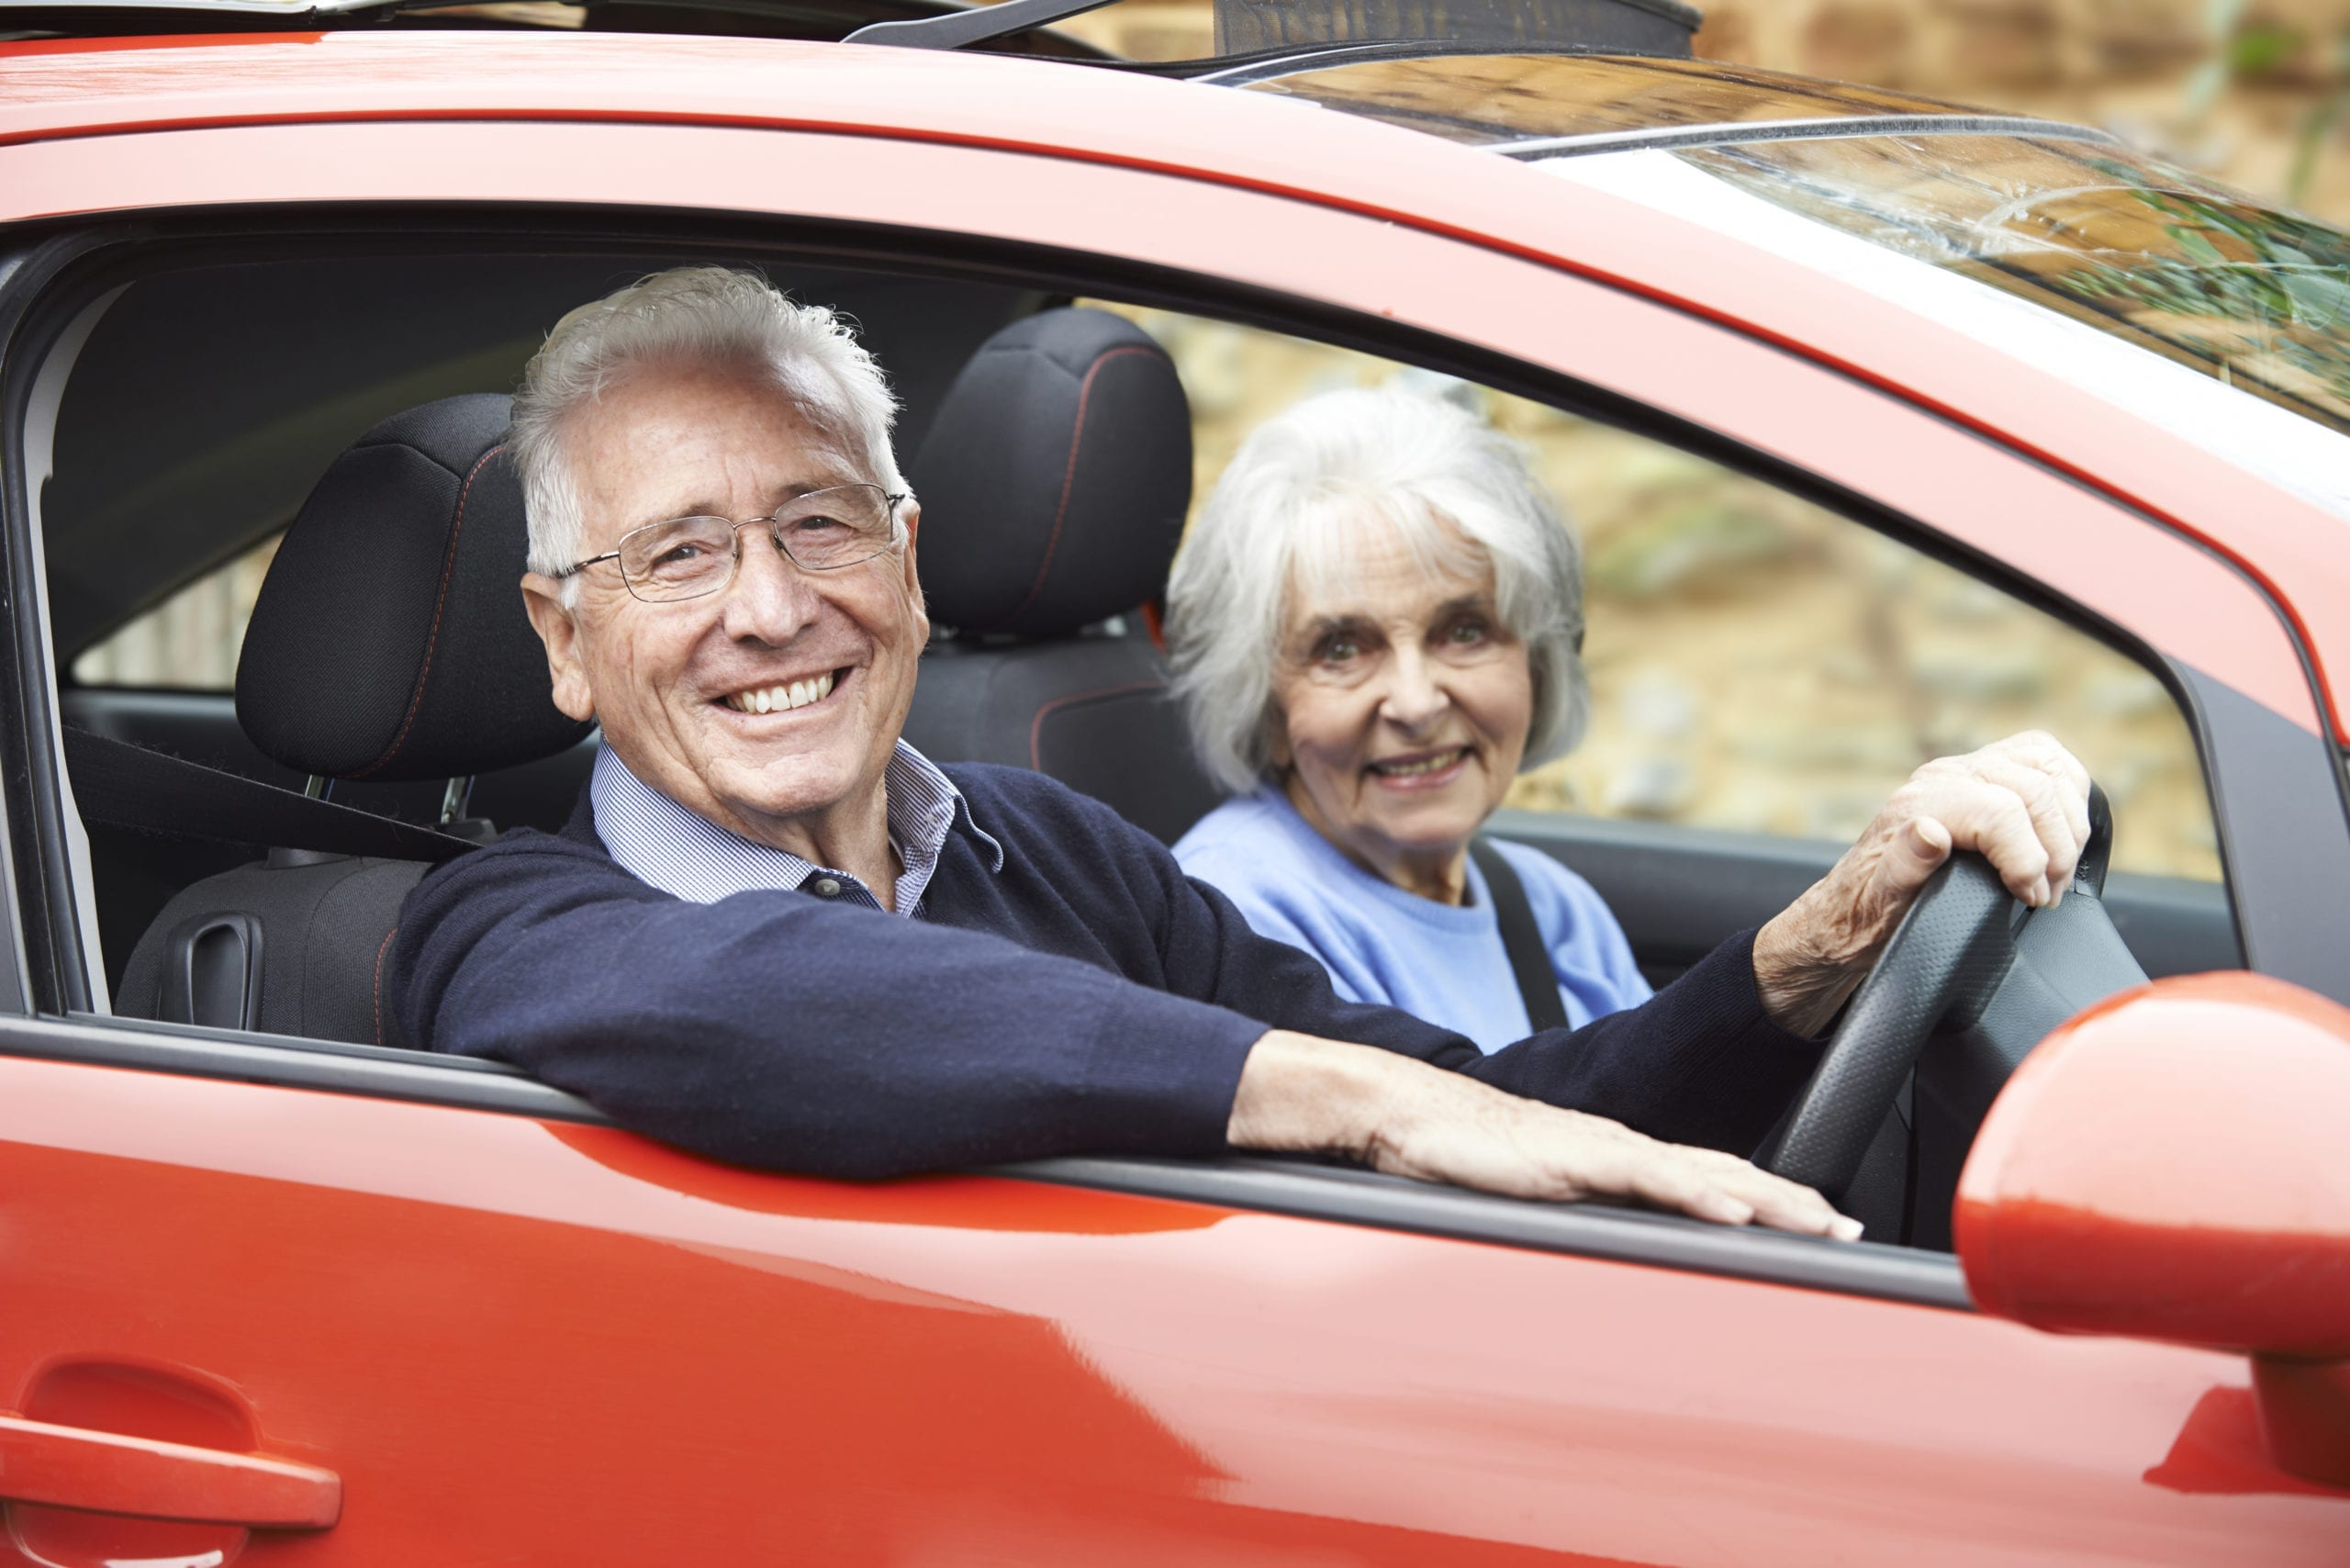 Cheap Car Insurance For Seniors: Follow These 5 Ways